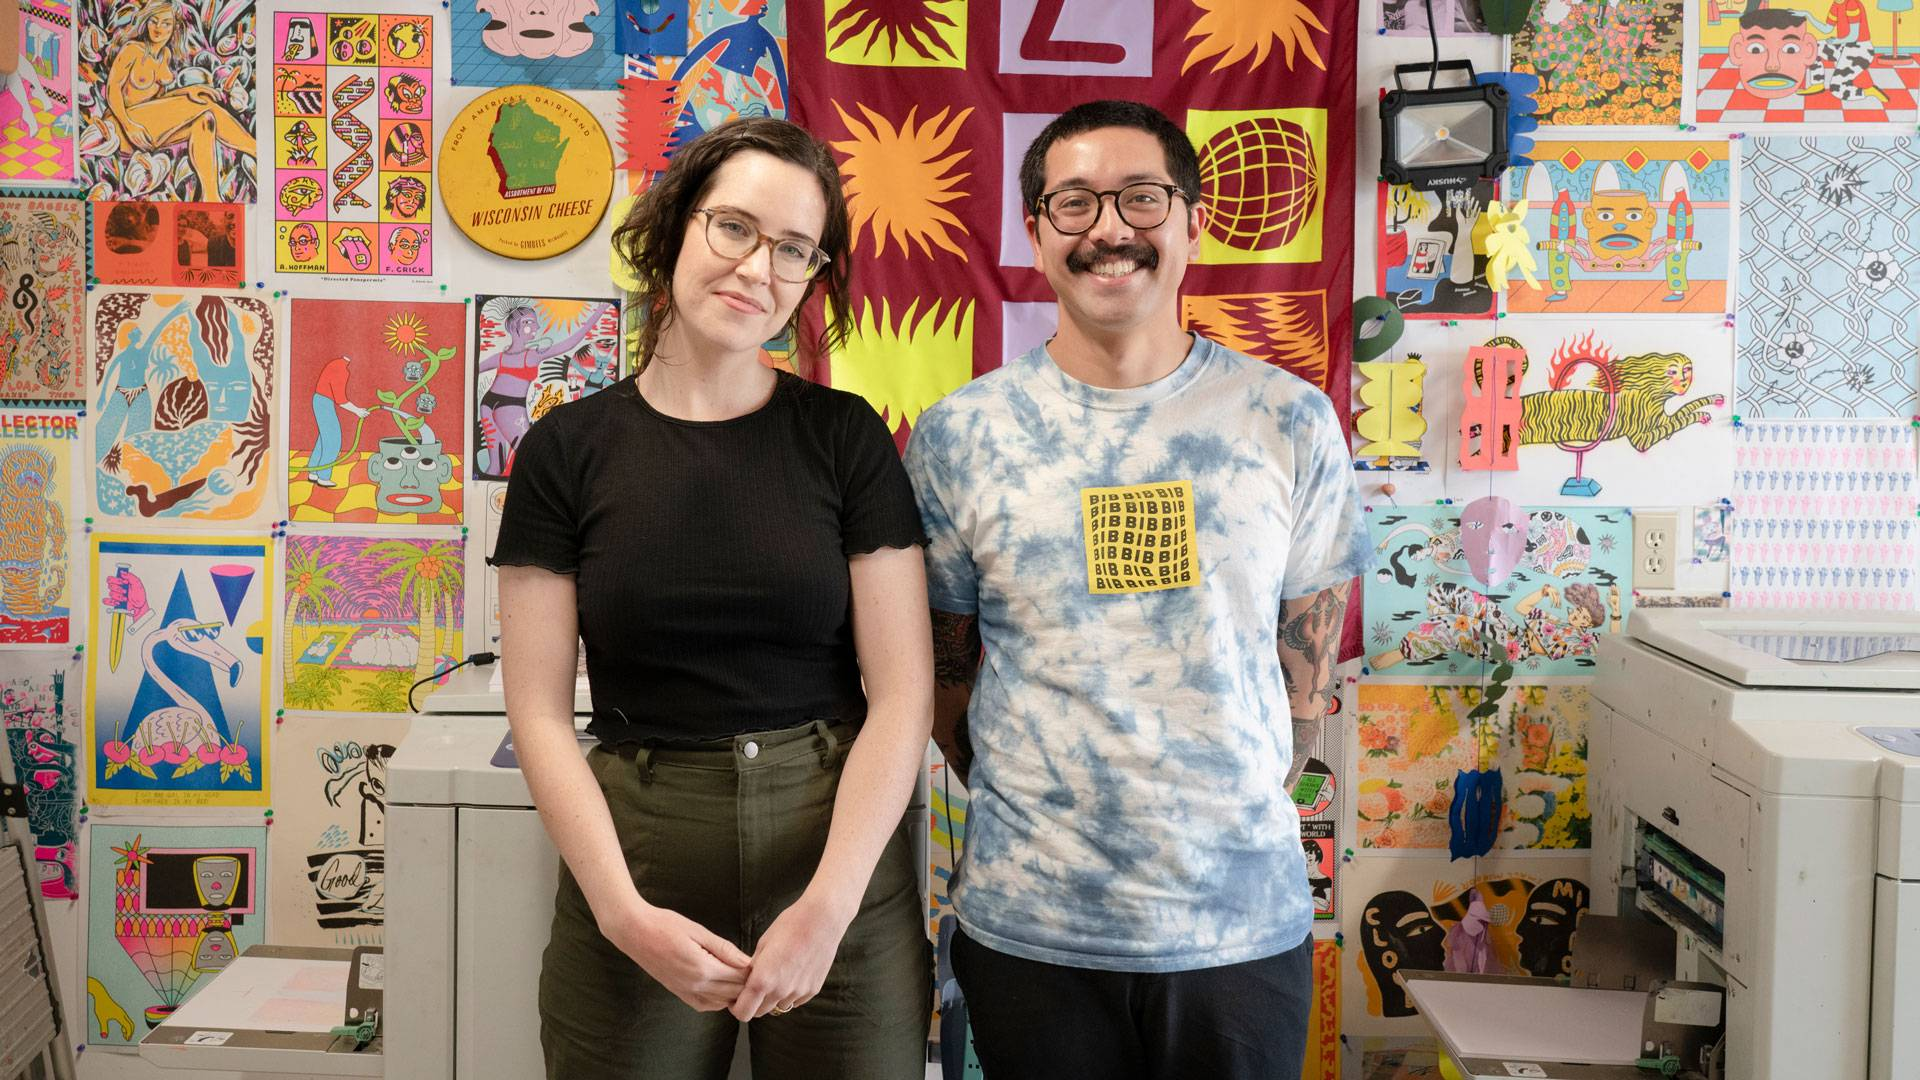 Meg Fransee and Aaron Gonzalez in their garage, which doubles as Floss Editions' Risograph printing operation. Graham Holoch/KQED